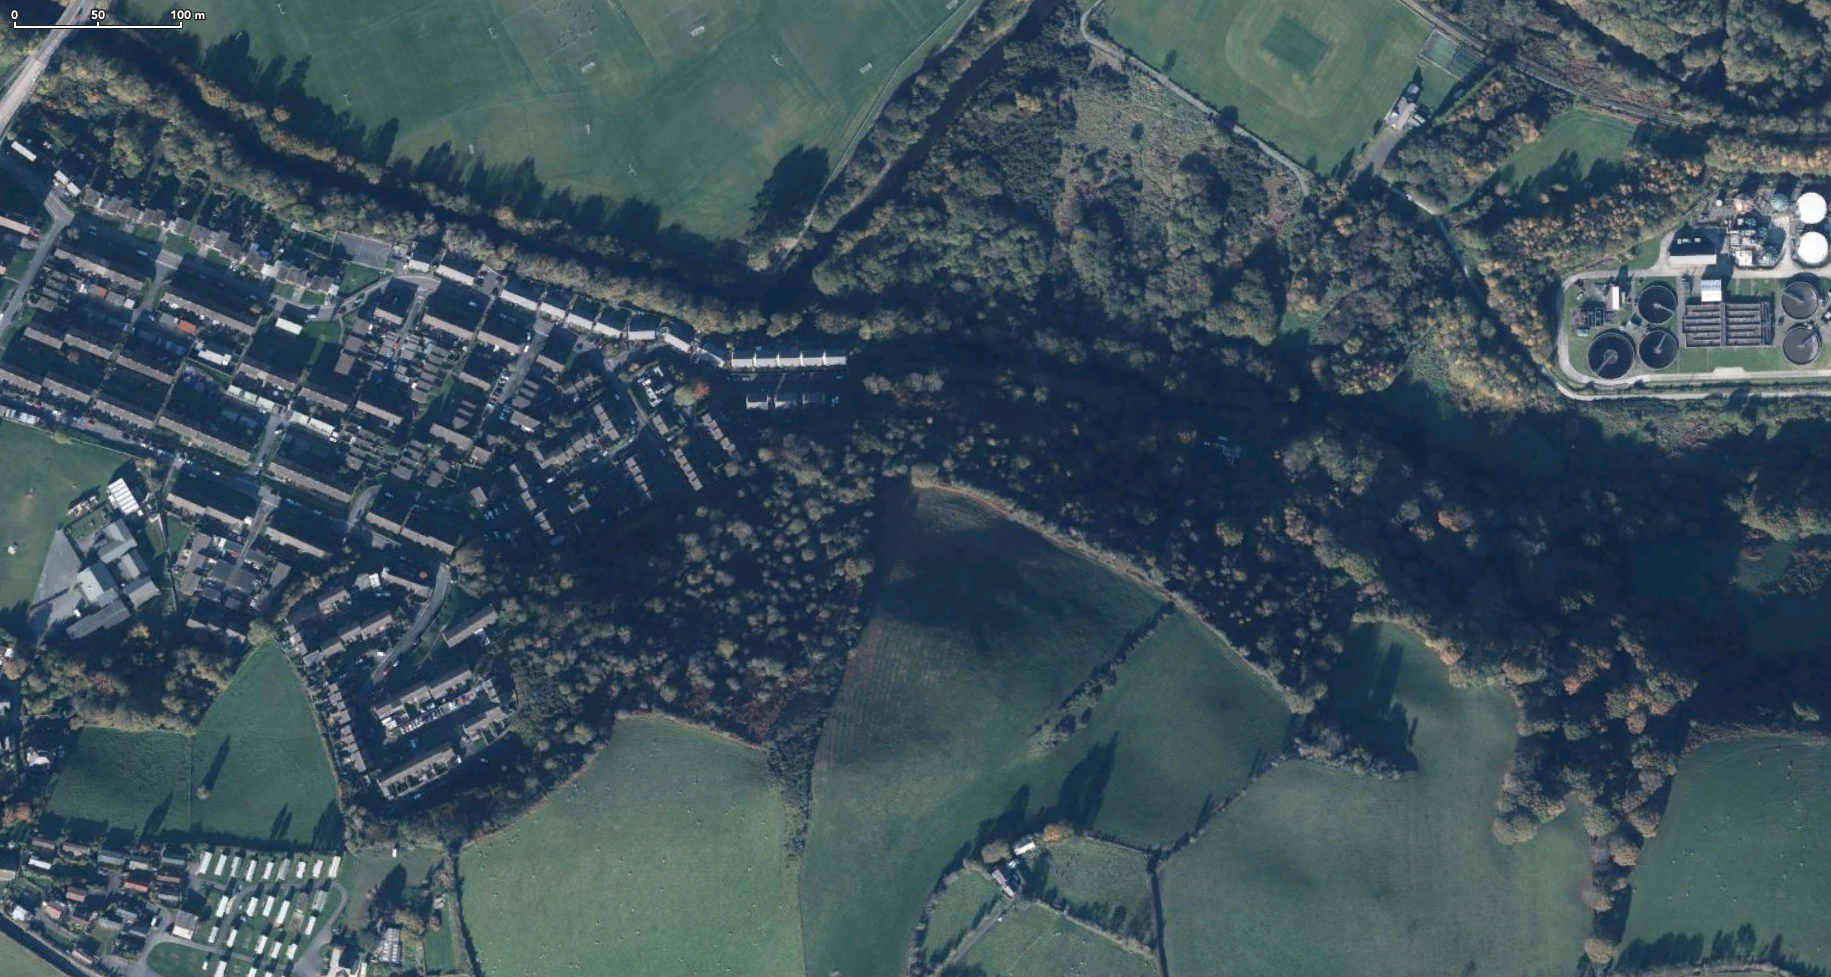 Satellite photo of wooded area at edge of town